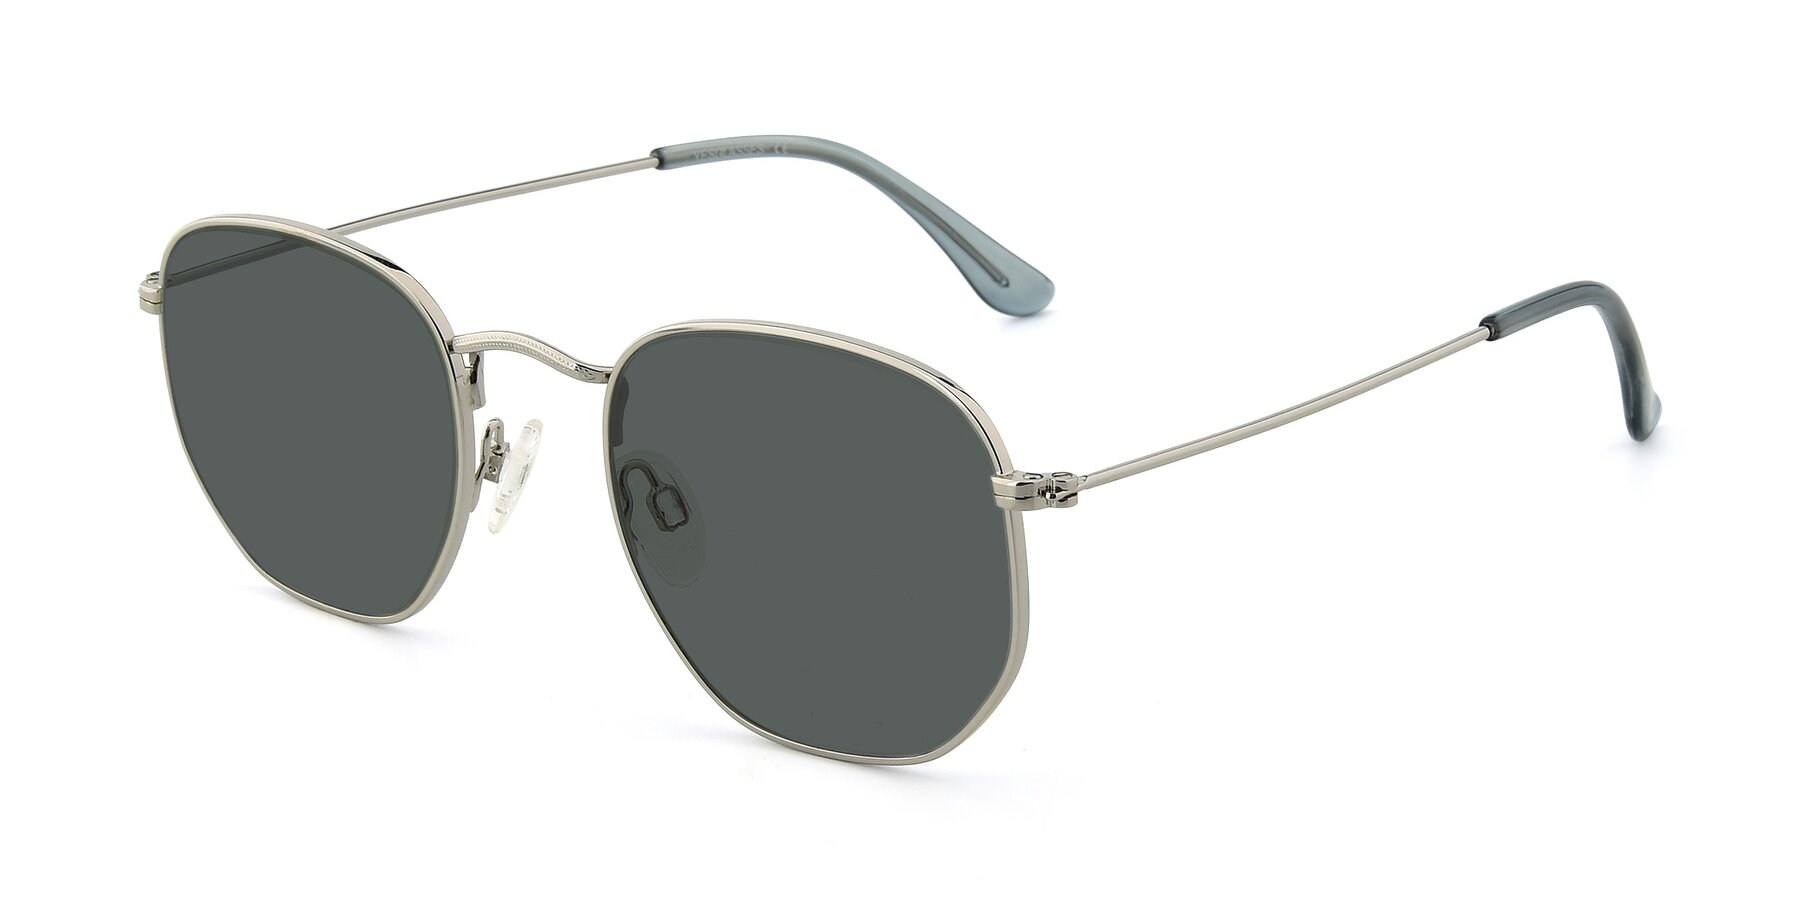 Angle of SSR1944 in Silver with Gray Polarized Lenses